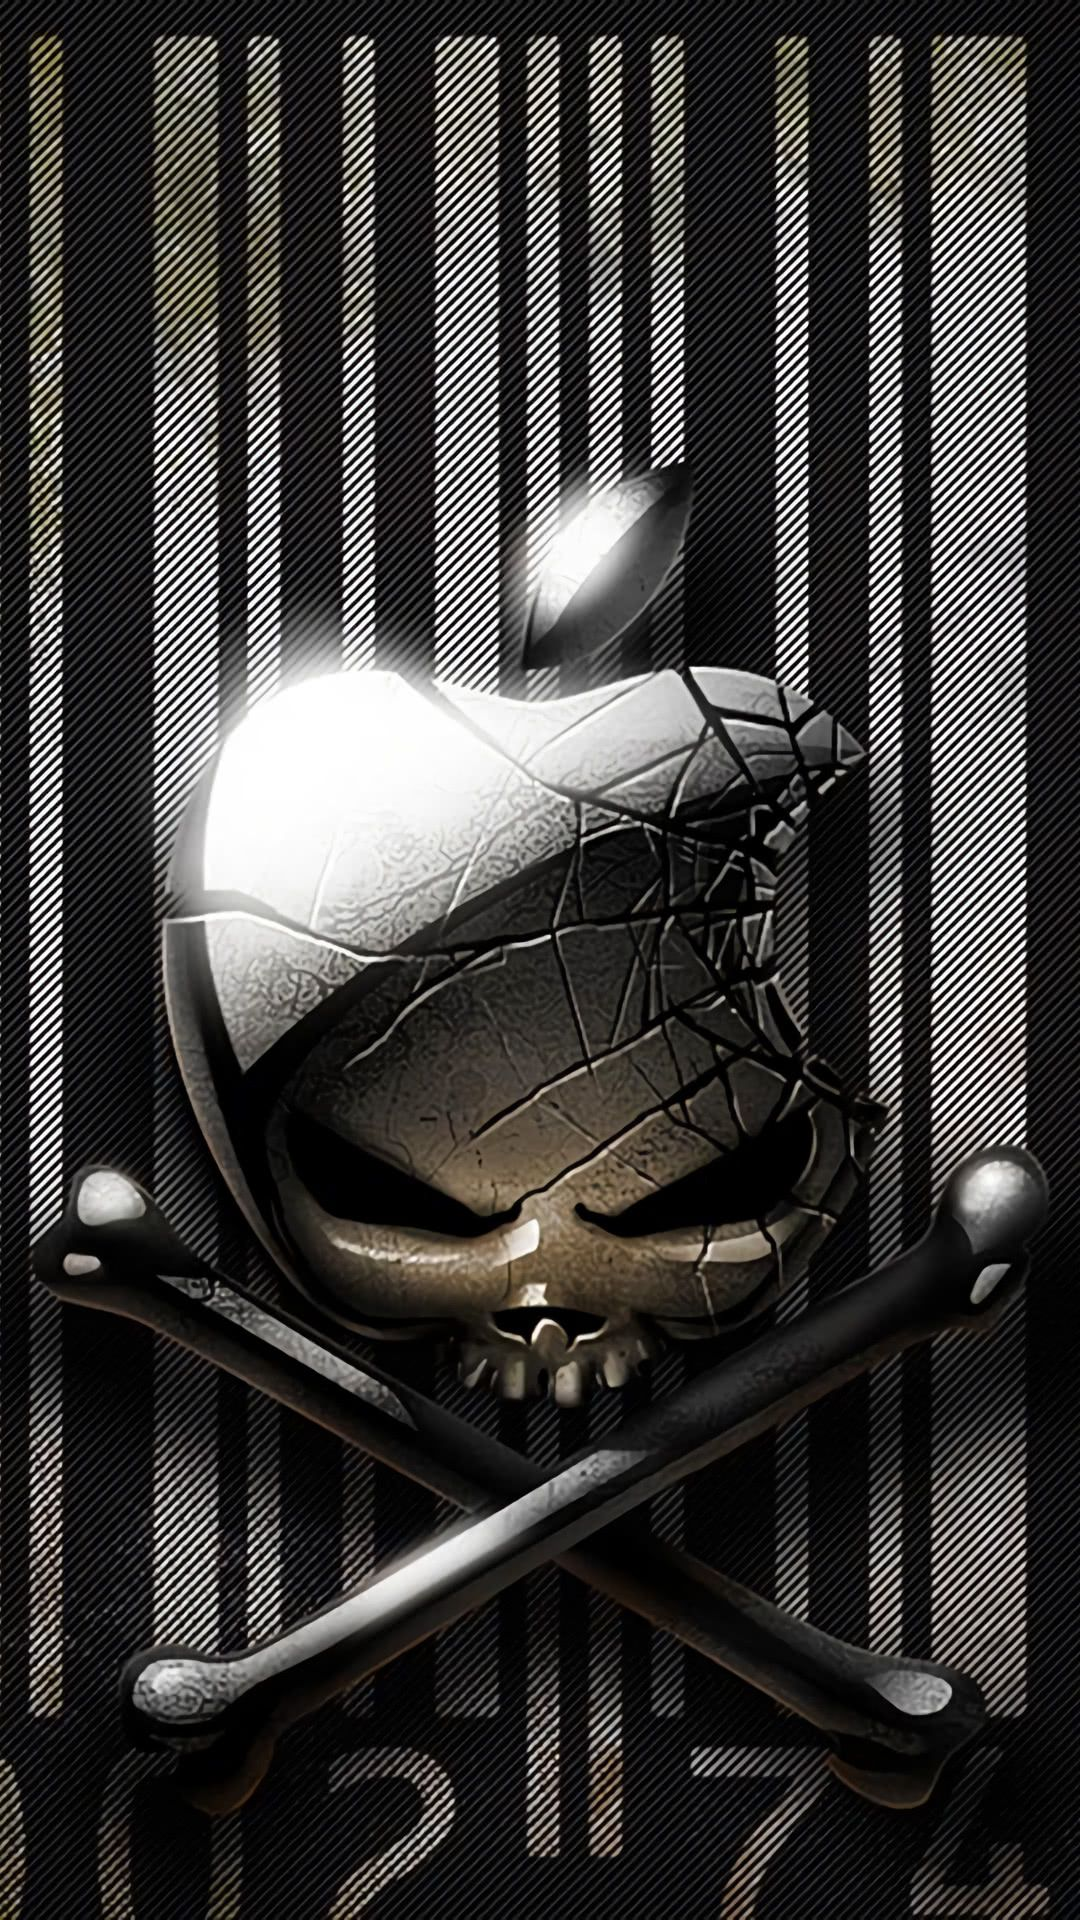 Mysterious iPhone wallpaper